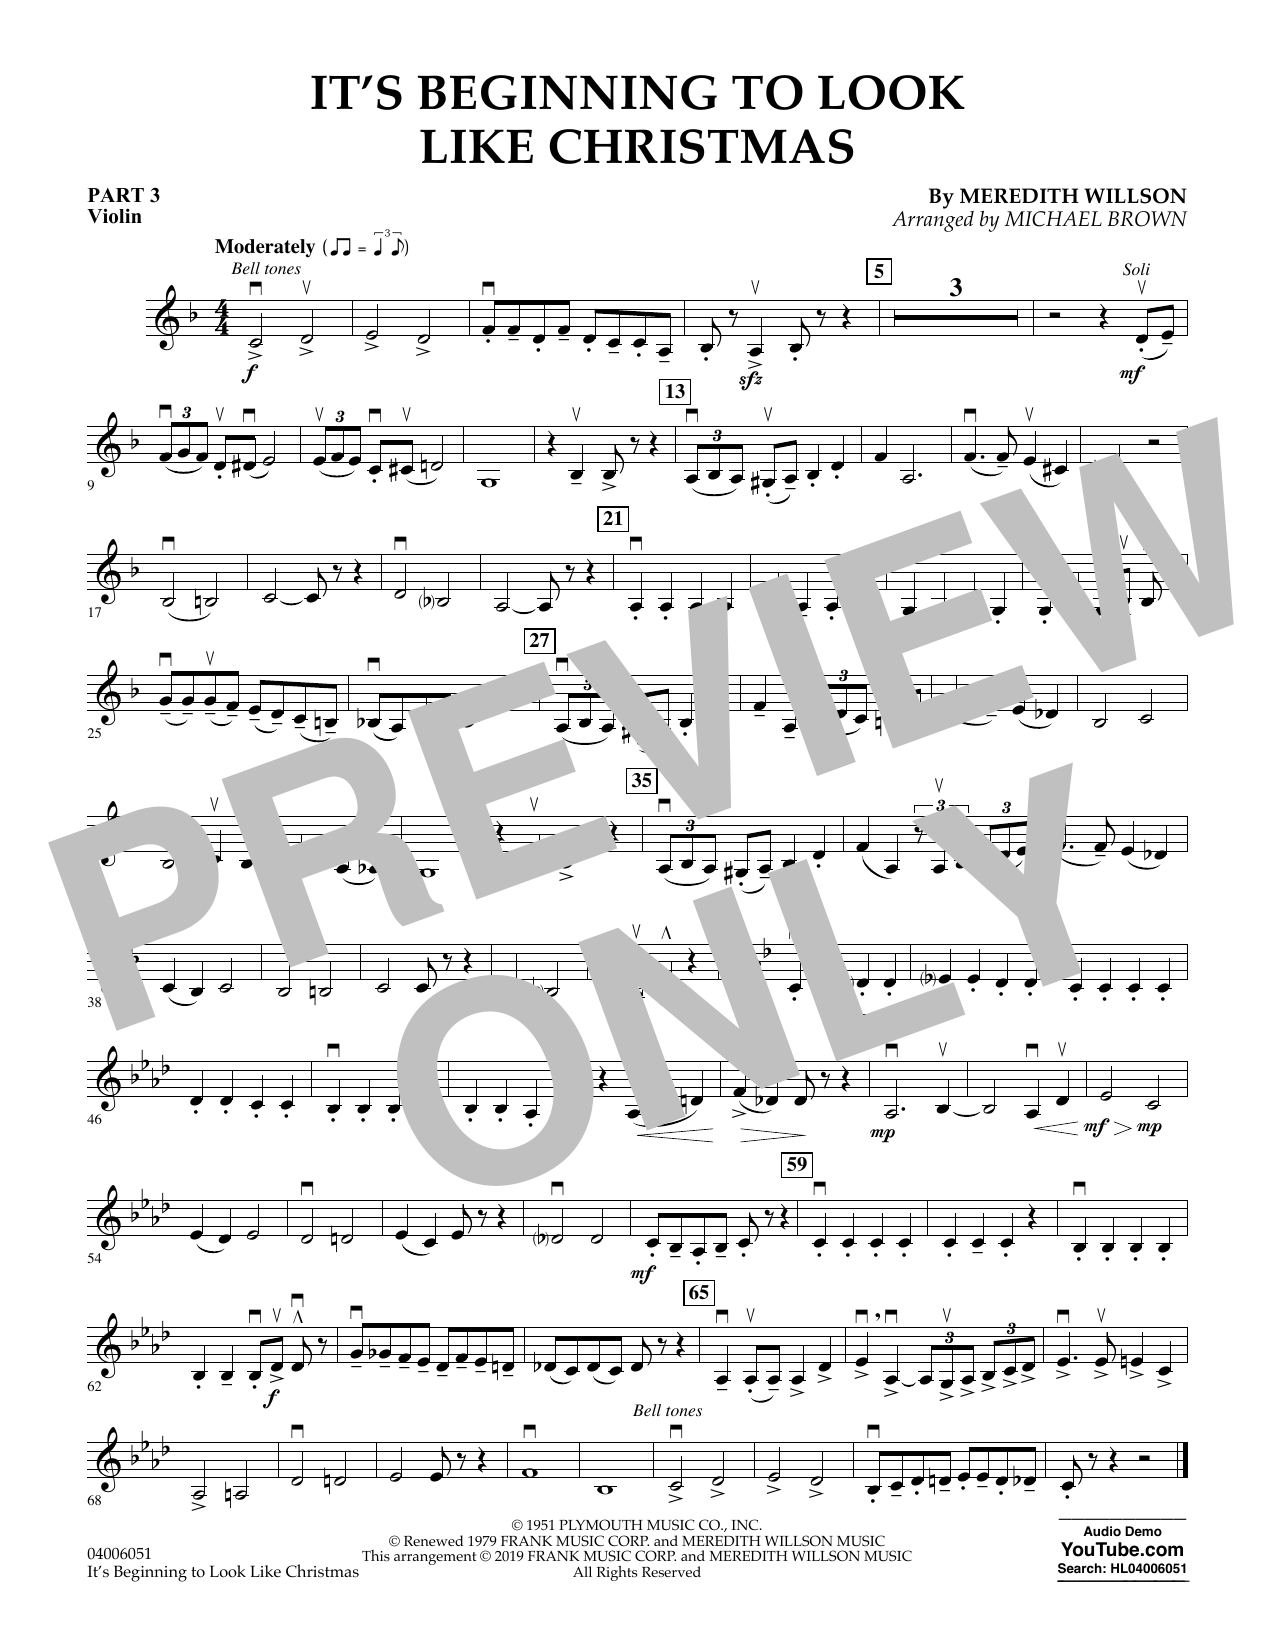 It's Beginning to Look Like Christmas (arr. Michael Brown) - Pt.3 - Violin (Flex-Band)